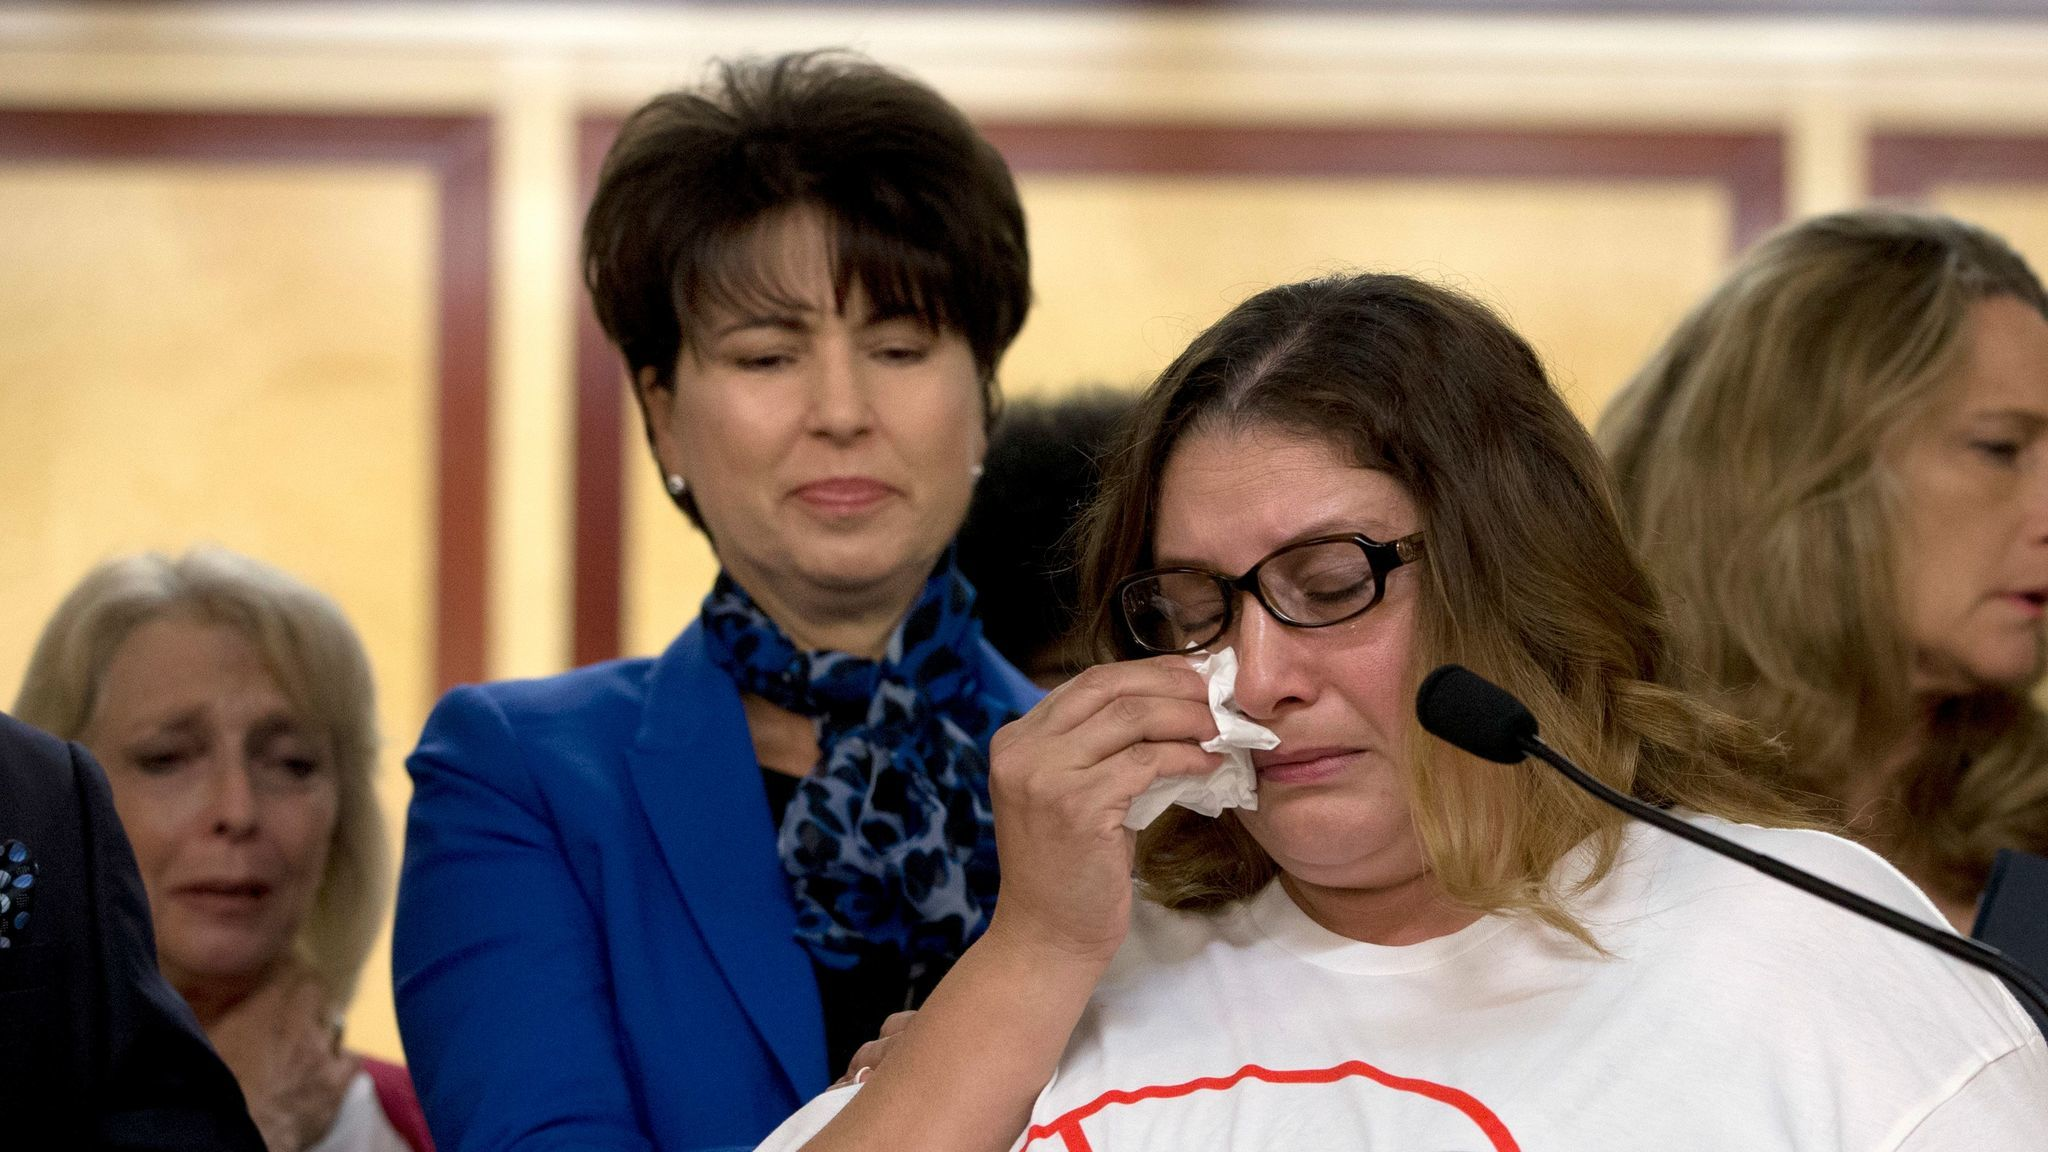 Norma Hernandez, backed by state Sen. Connie Leyva (D-Chino), wipes her eyes as she talks at a September 2016 news conference about being raped when she was 13. Leyva sponsored a bill that ended California's statute of limitation in some rape cases.